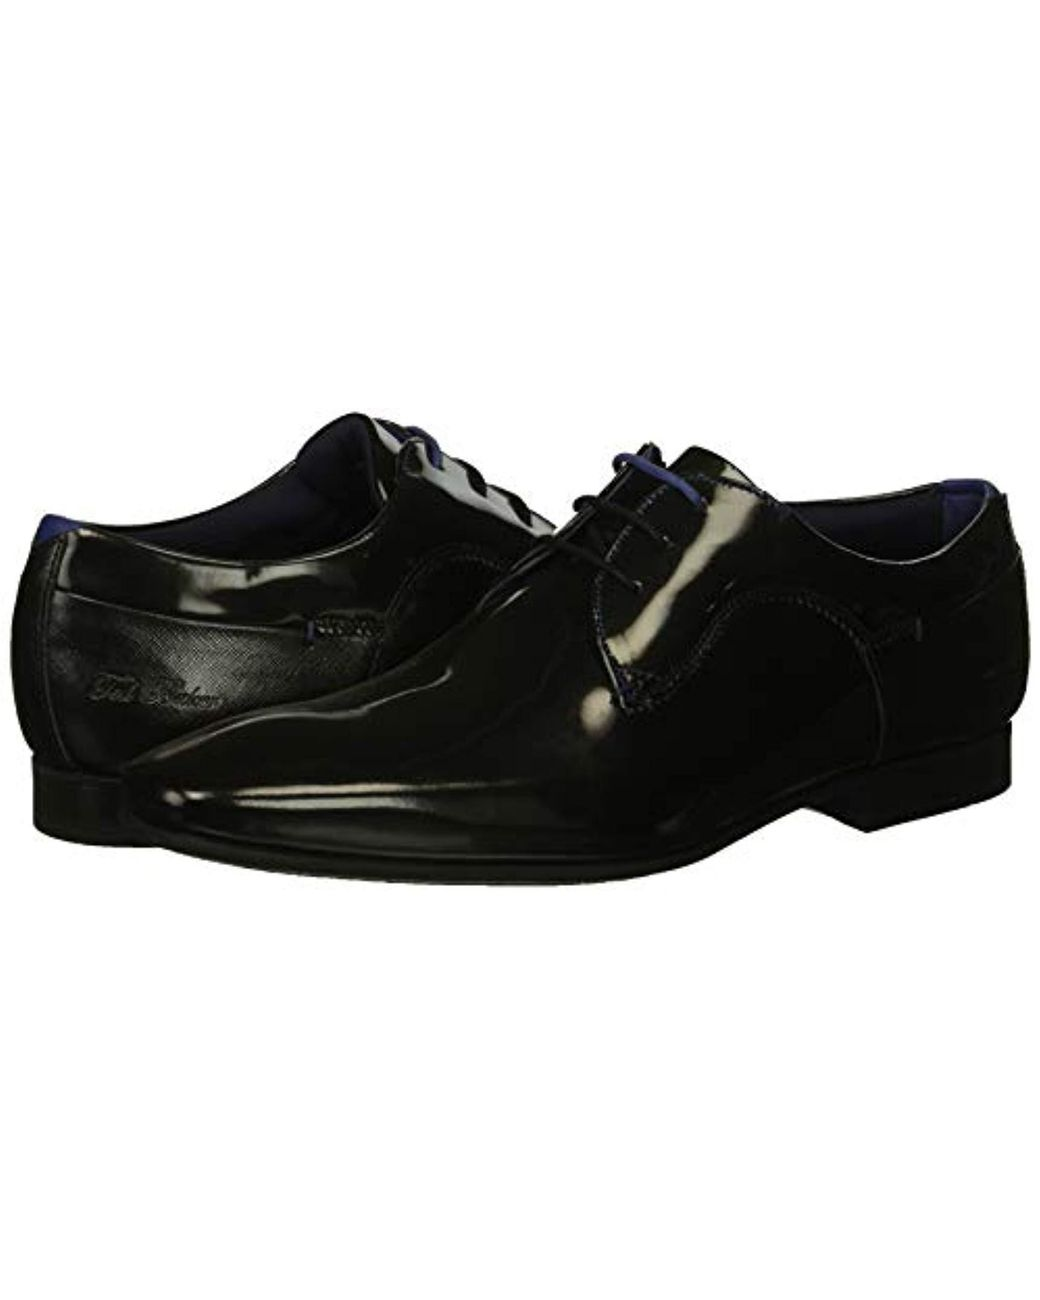 e425cc7420b2 Lyst - Ted Baker Tifipp Oxford in Black for Men